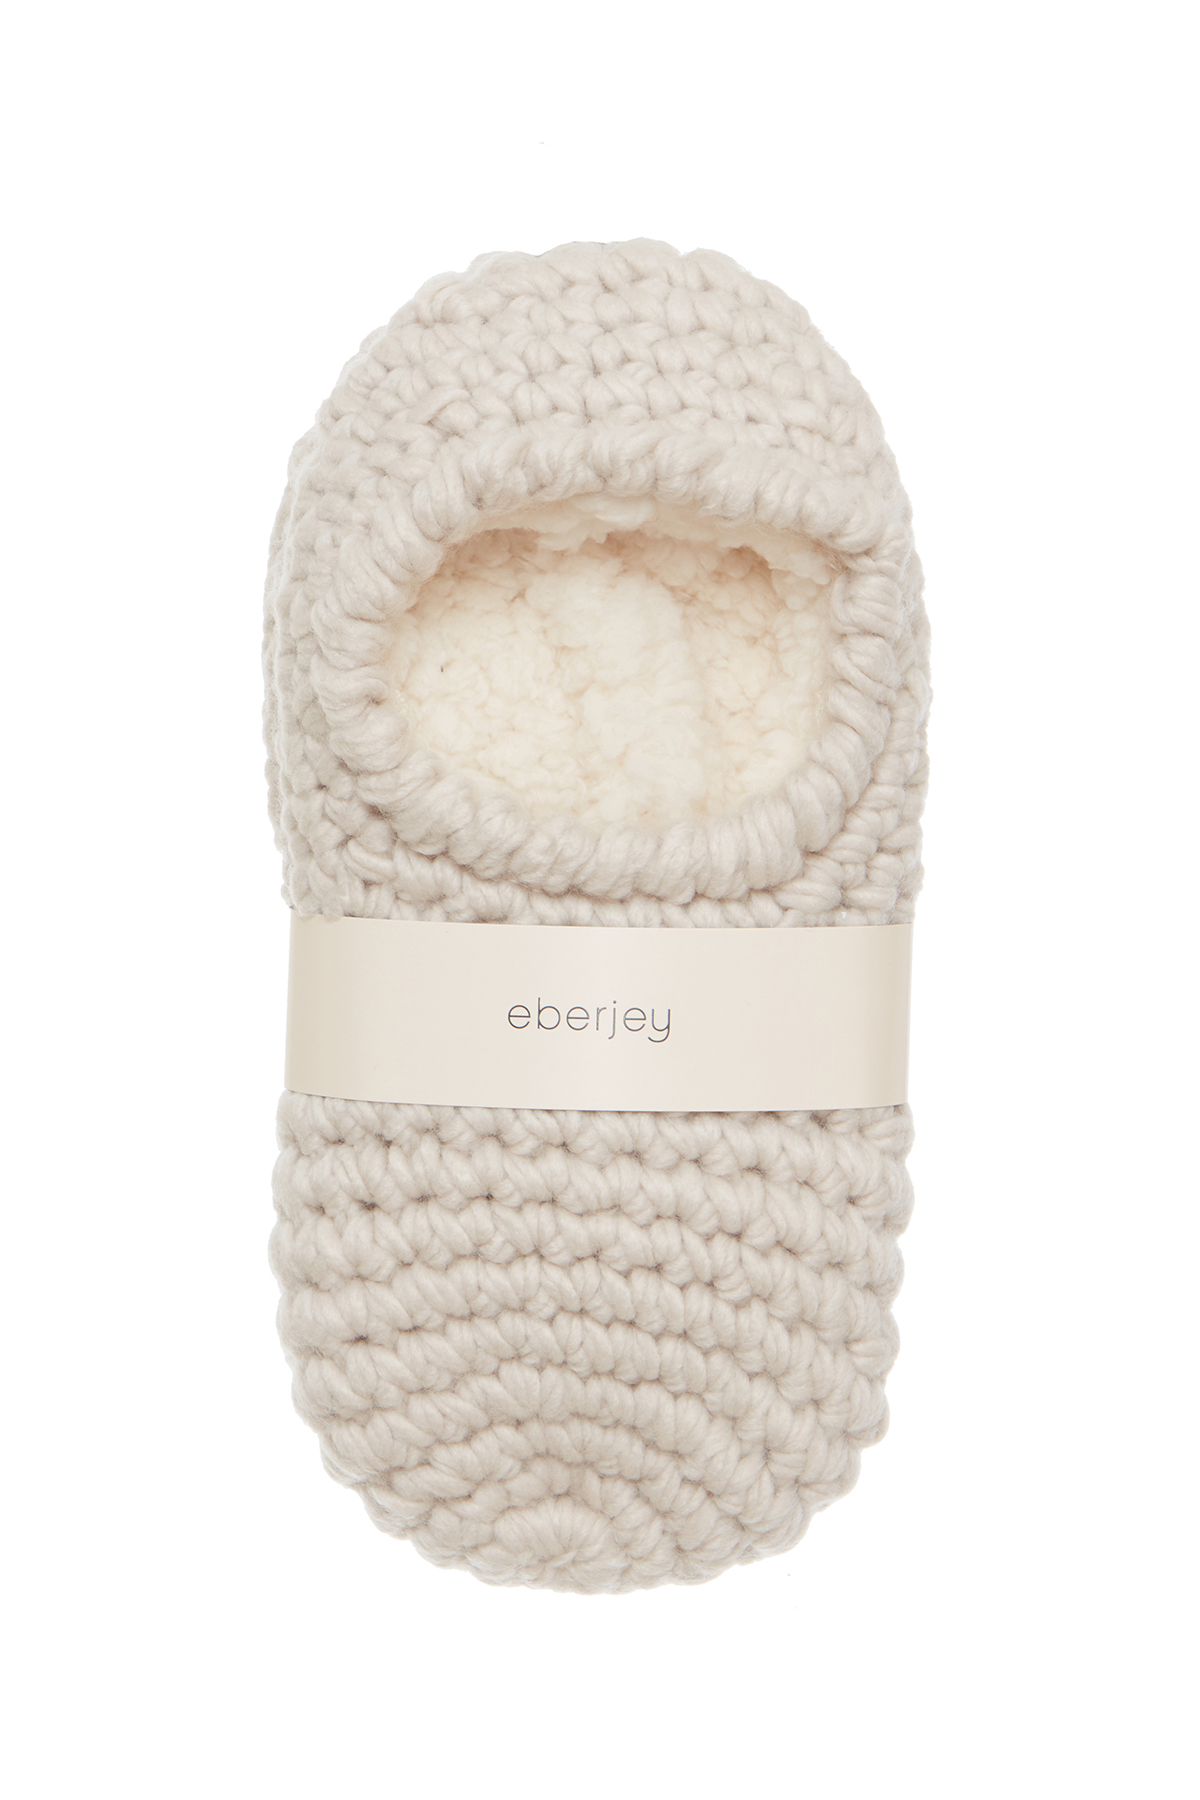 Eberjey Cozy Ankle Slipper Sock